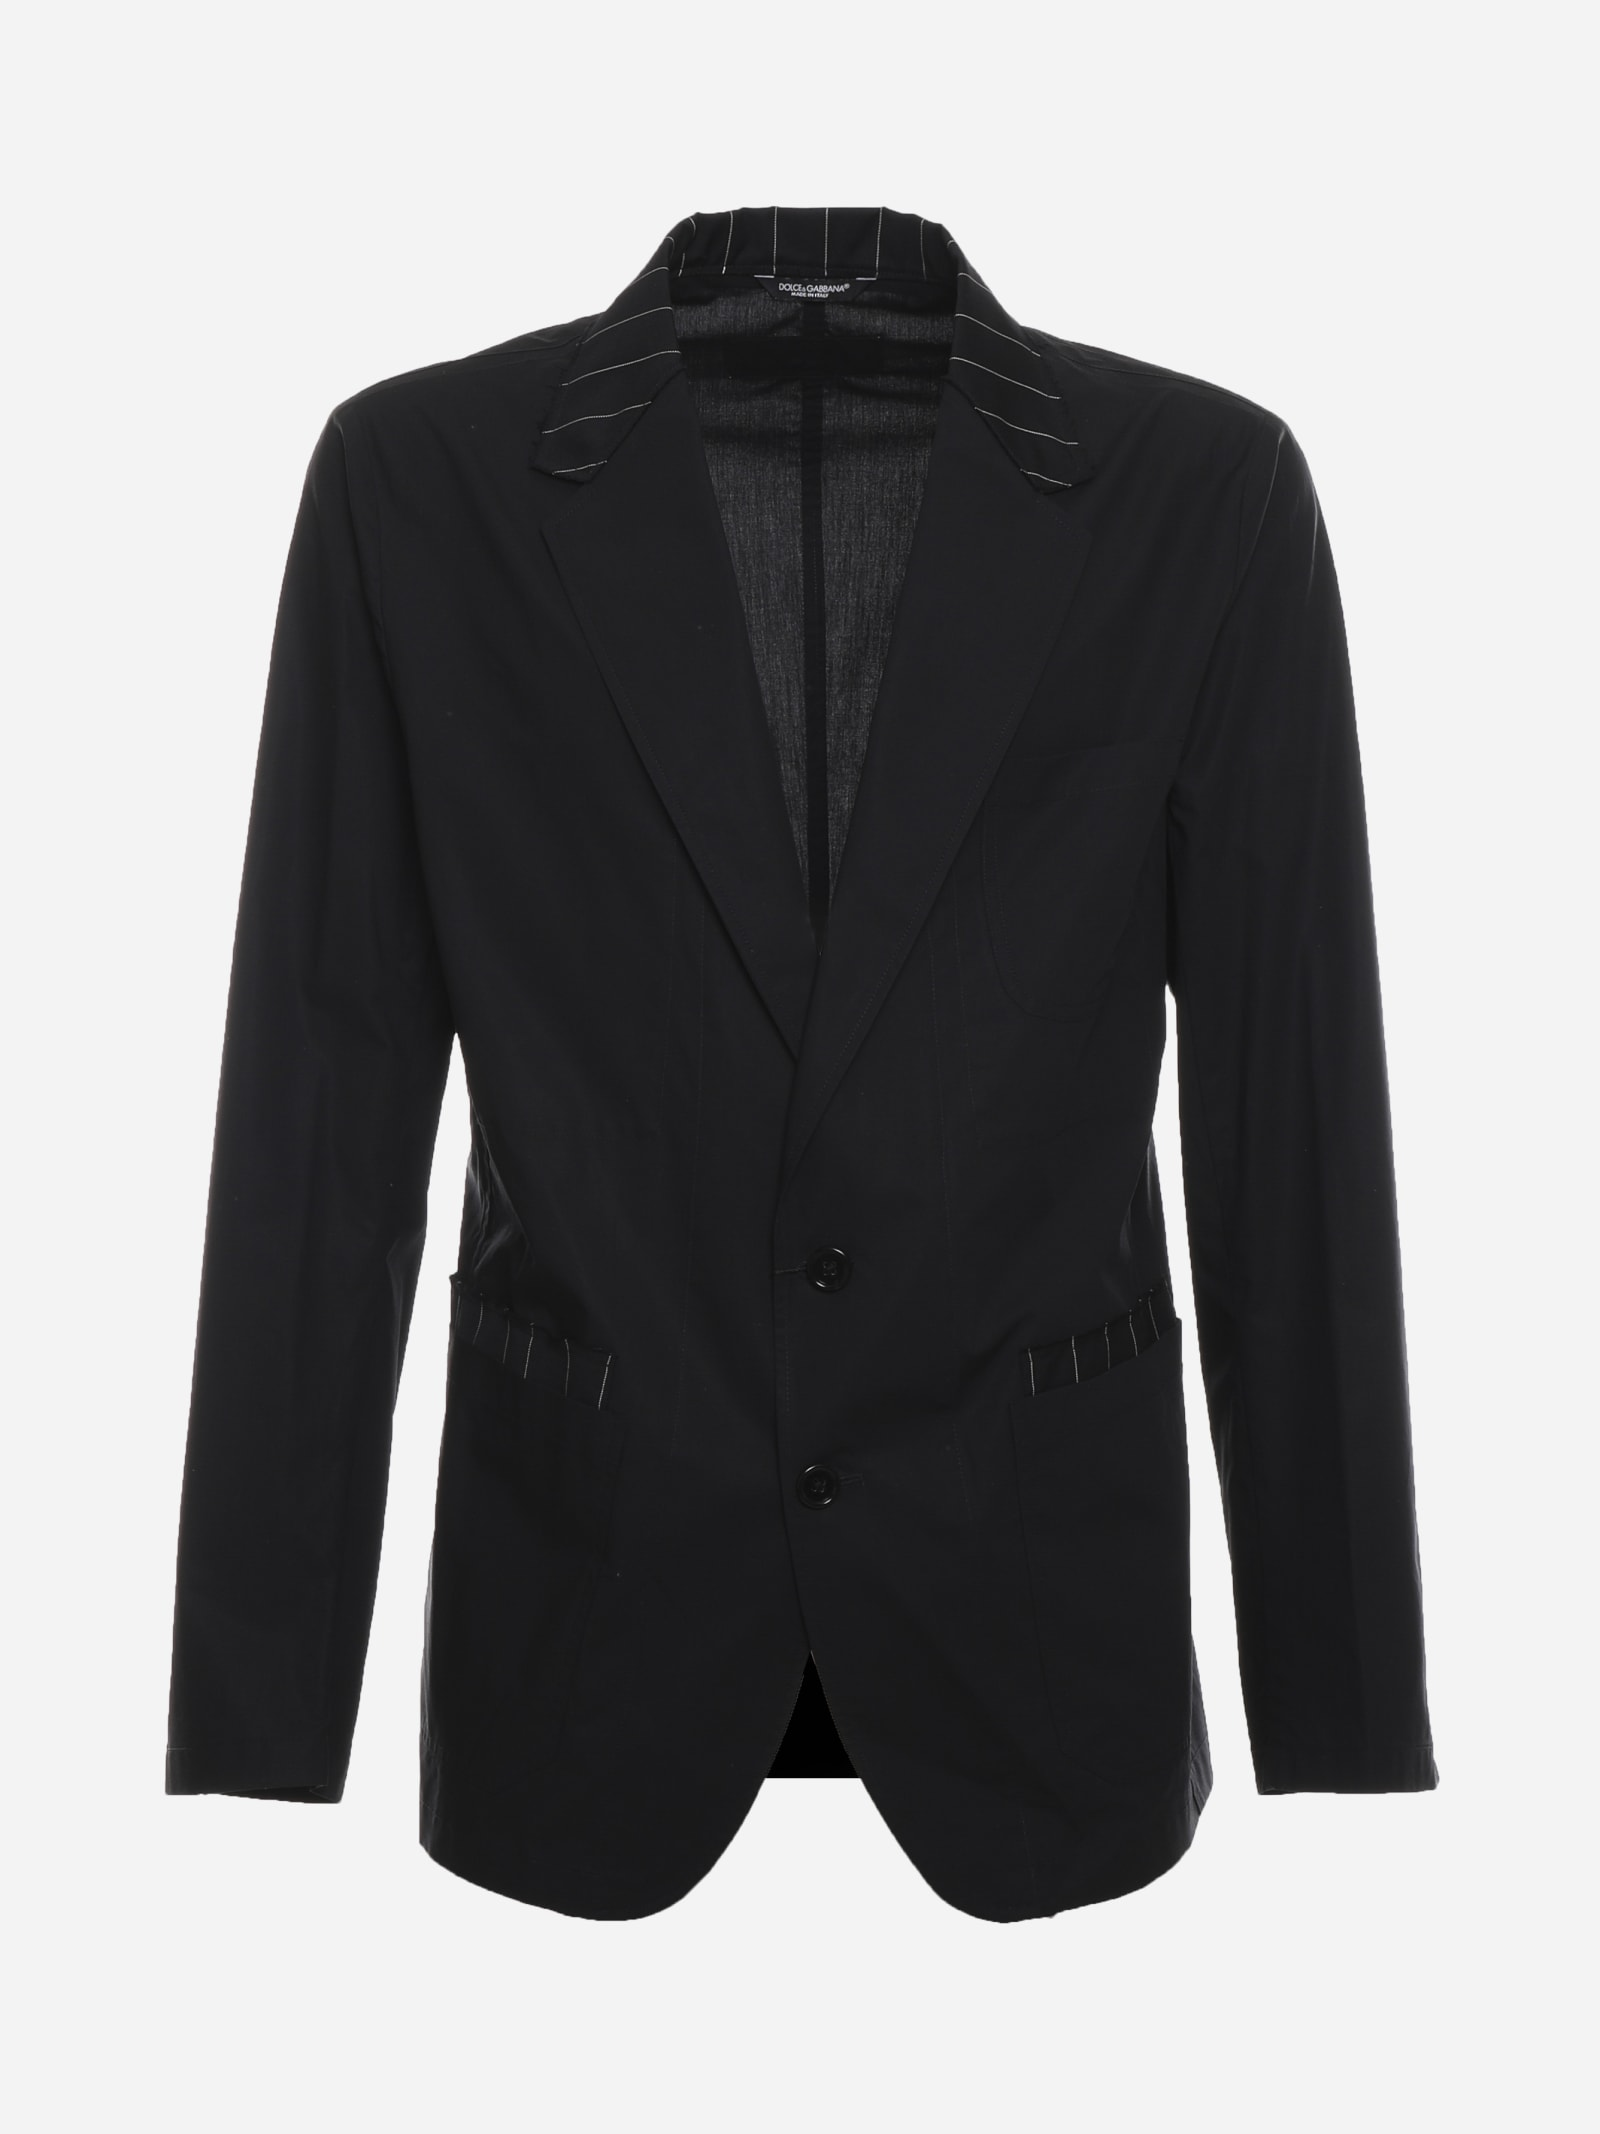 Dolce & Gabbana Single-breasted Jacket In Cotton And Wool With Striped Details